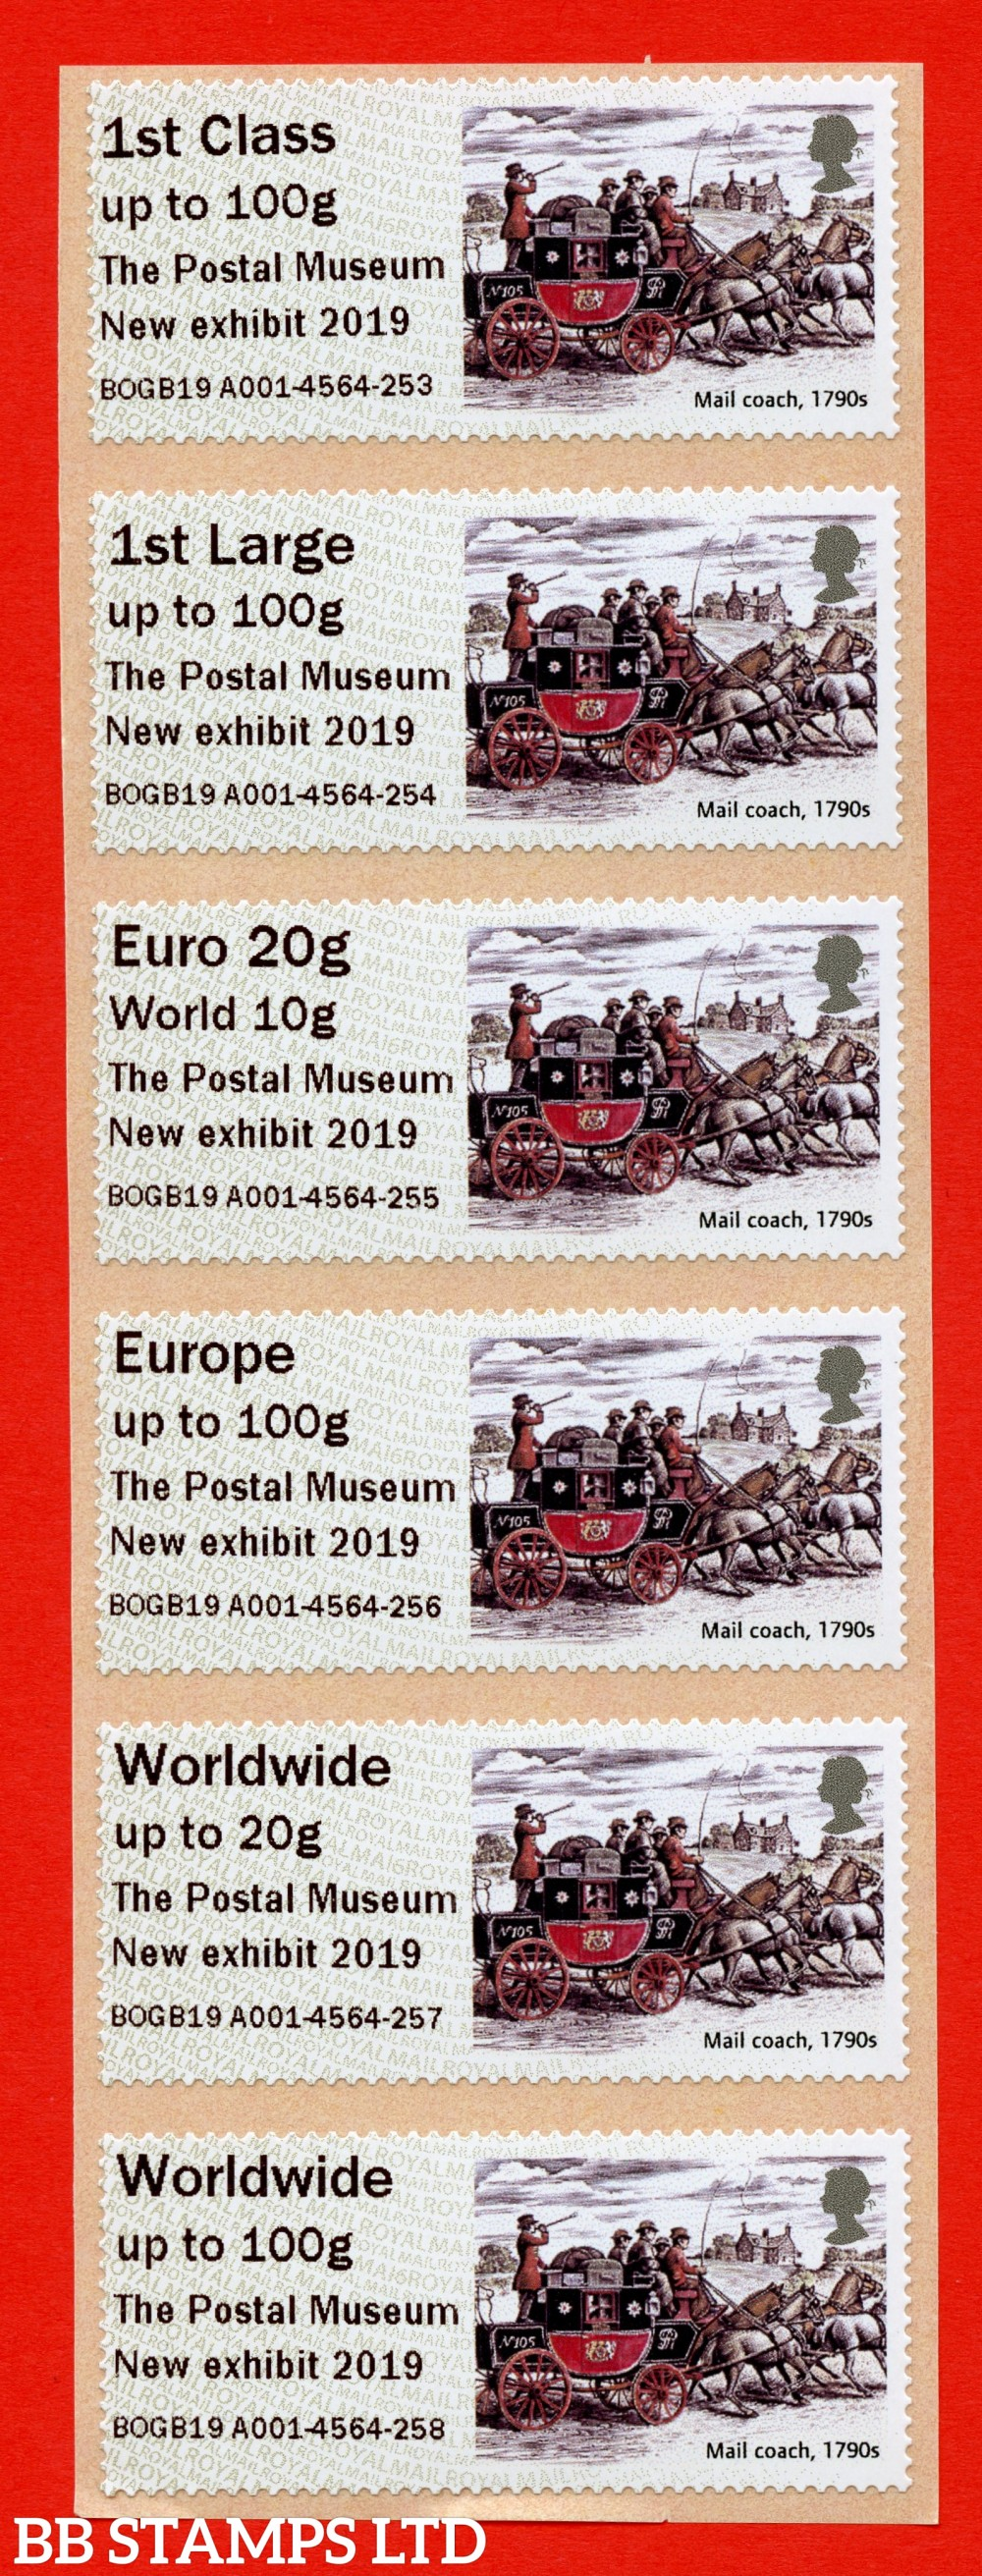 Mail Coach (2019): The Postal Museum New exhibit 2019, 1st - W/Wide 100g Type IIIA digitally printed: MA16 (set of 6) (BK28,P19)